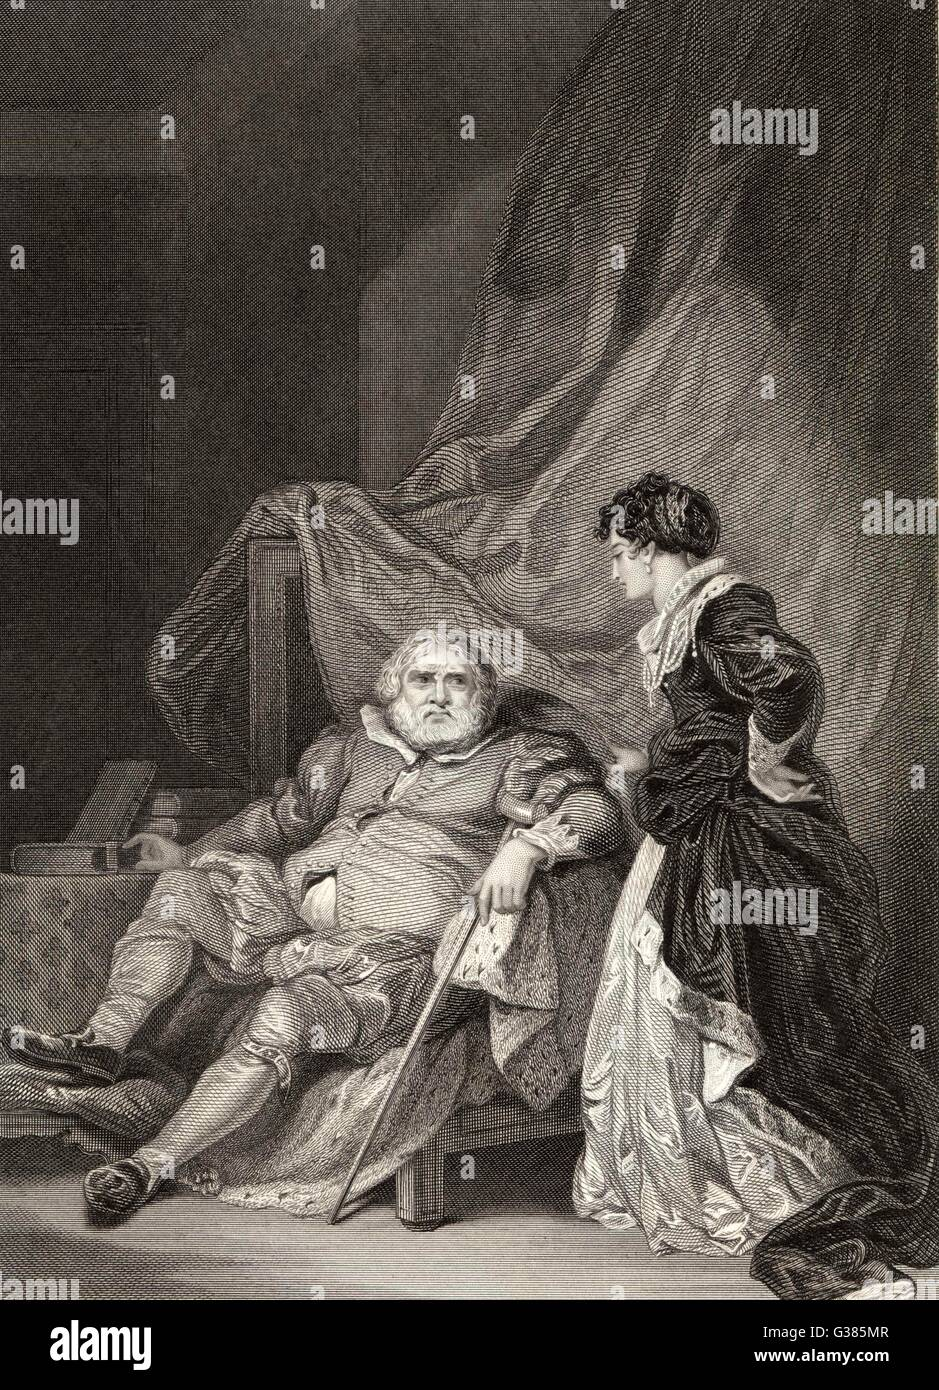 Catherine Parr with an aged  King Henry VIII - British  Royalty        Date: 1543 - Stock Image